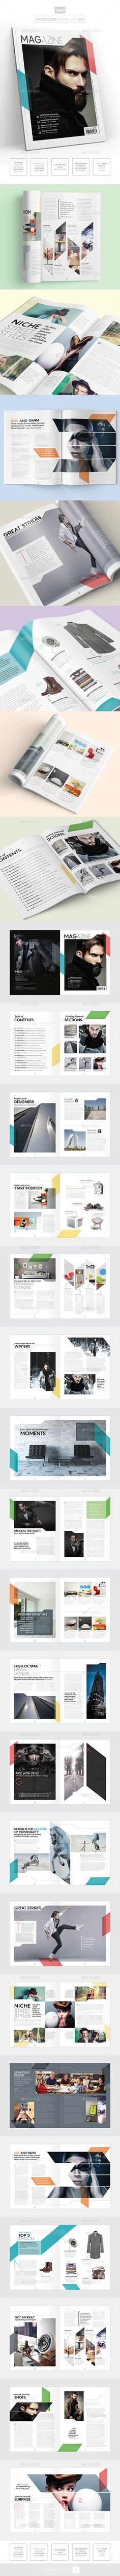 Magazine Template  InDesign 40 Page Layout V9 — InDesign INDD #brochure #clean